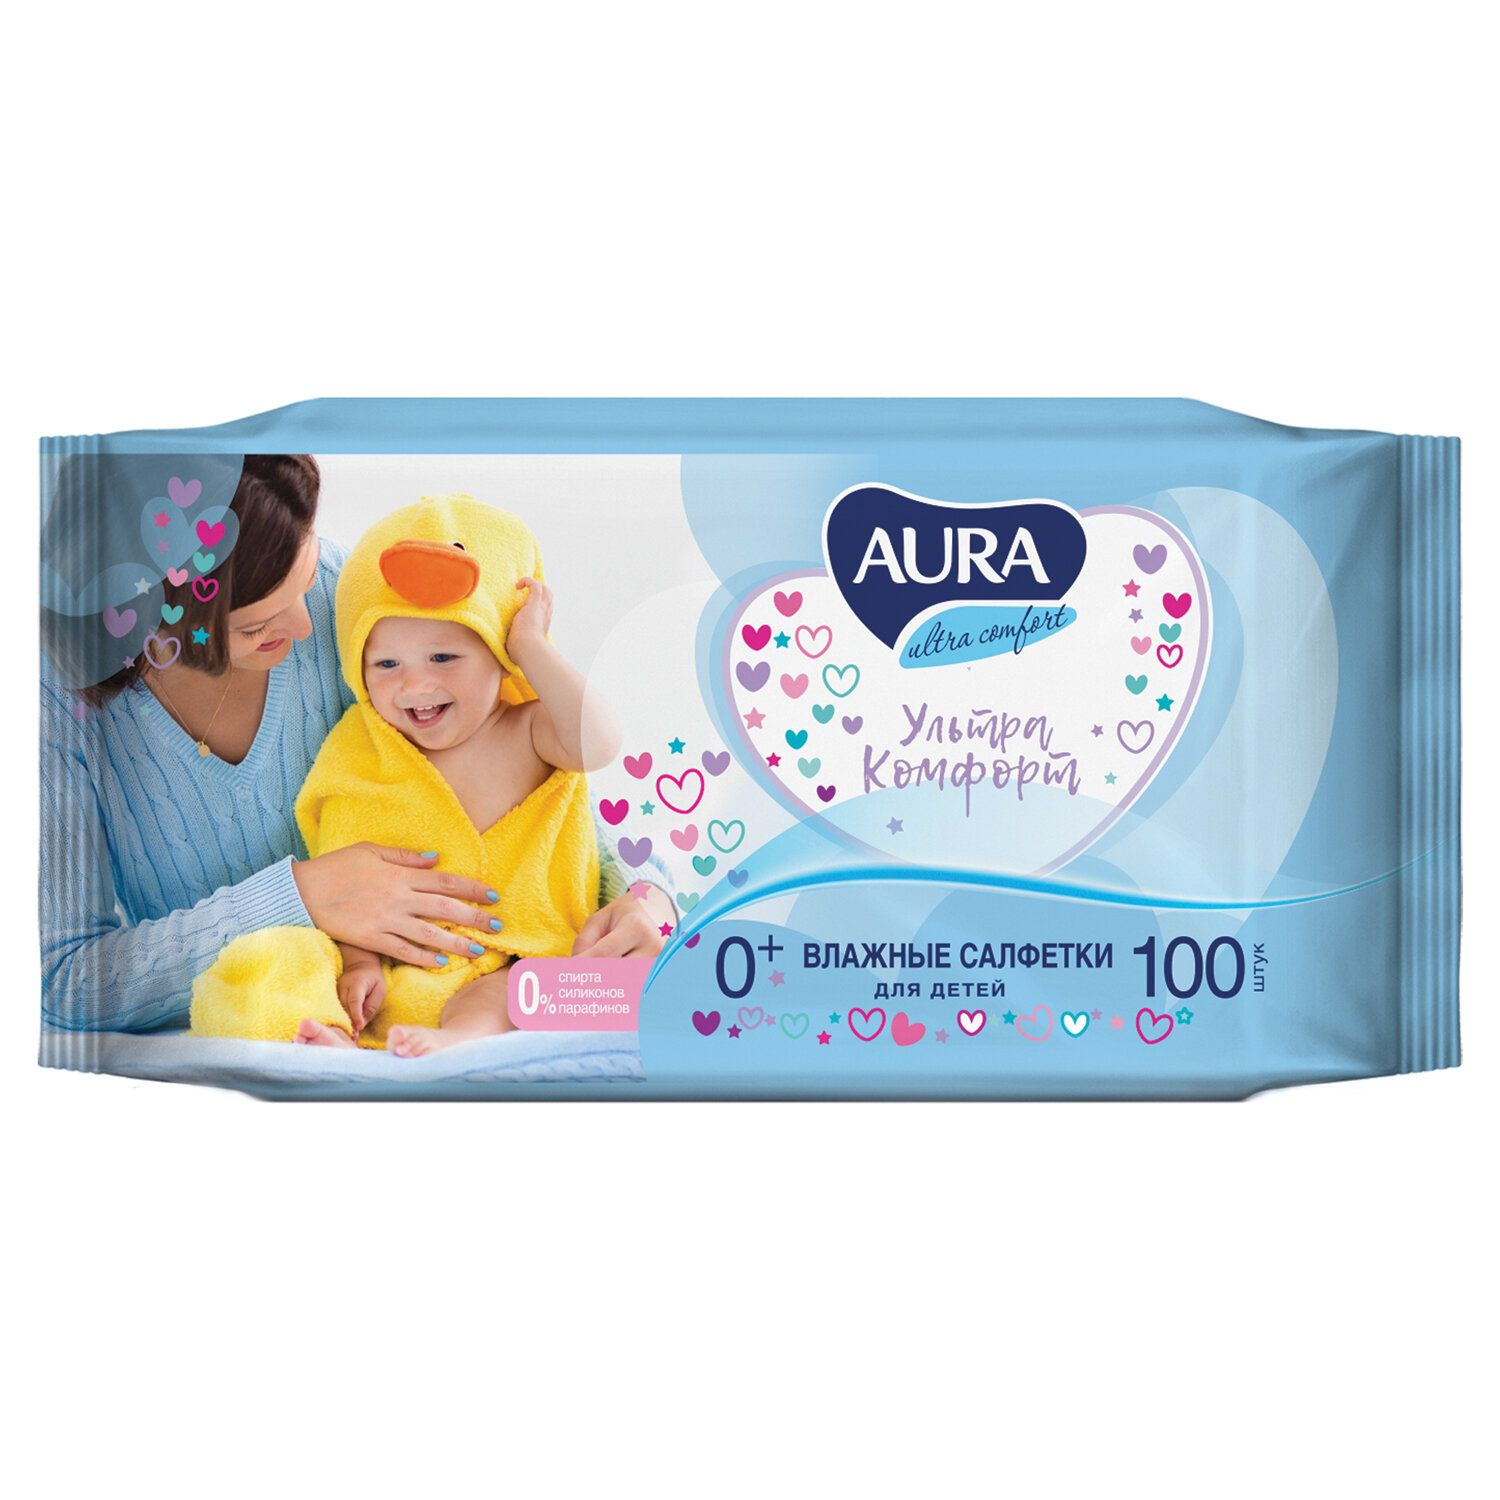 """AURA / Wet wipes for children """"Ultra comfort"""", universal, cleansing, hypoallergenic, alcohol-free, SET 100 pcs."""